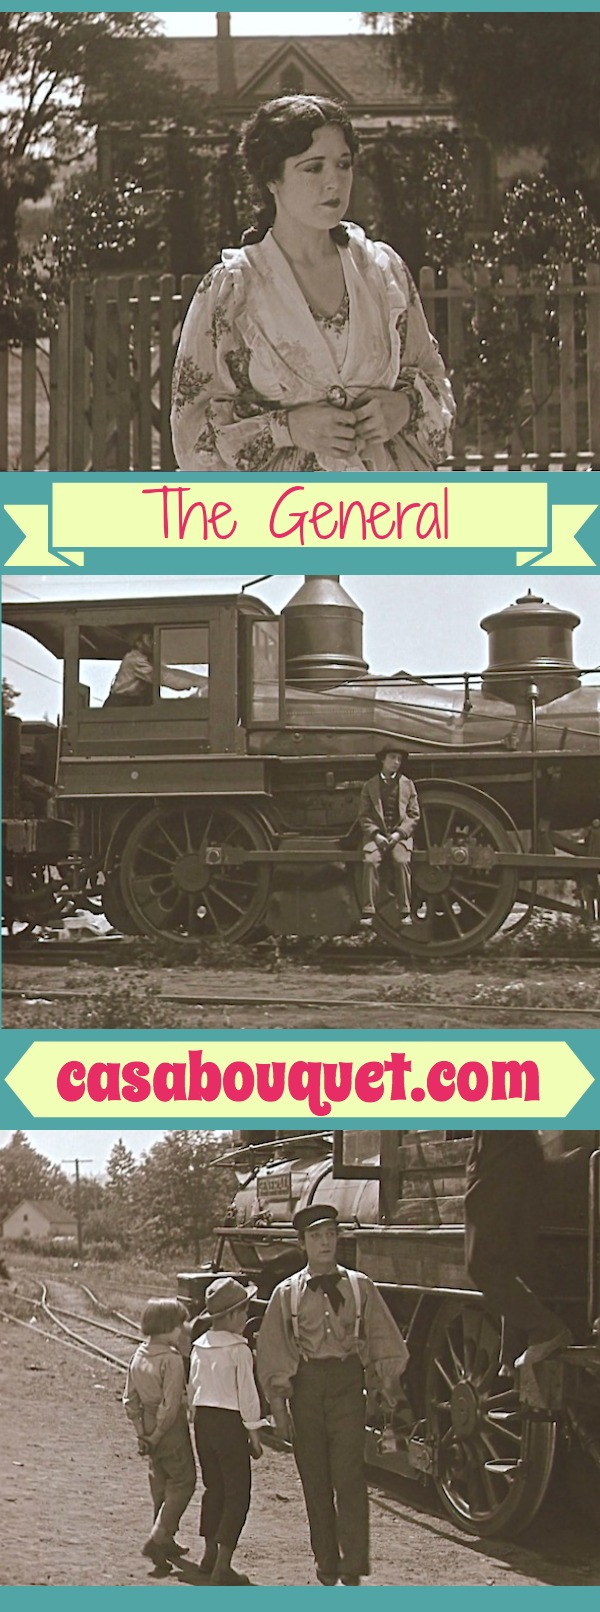 The General stars the great Buster Keaton in a Civil War tale. Action, romance, stunts, and comedy! Must see for film buffs. Lisa's Home Bijou: The General (1926)